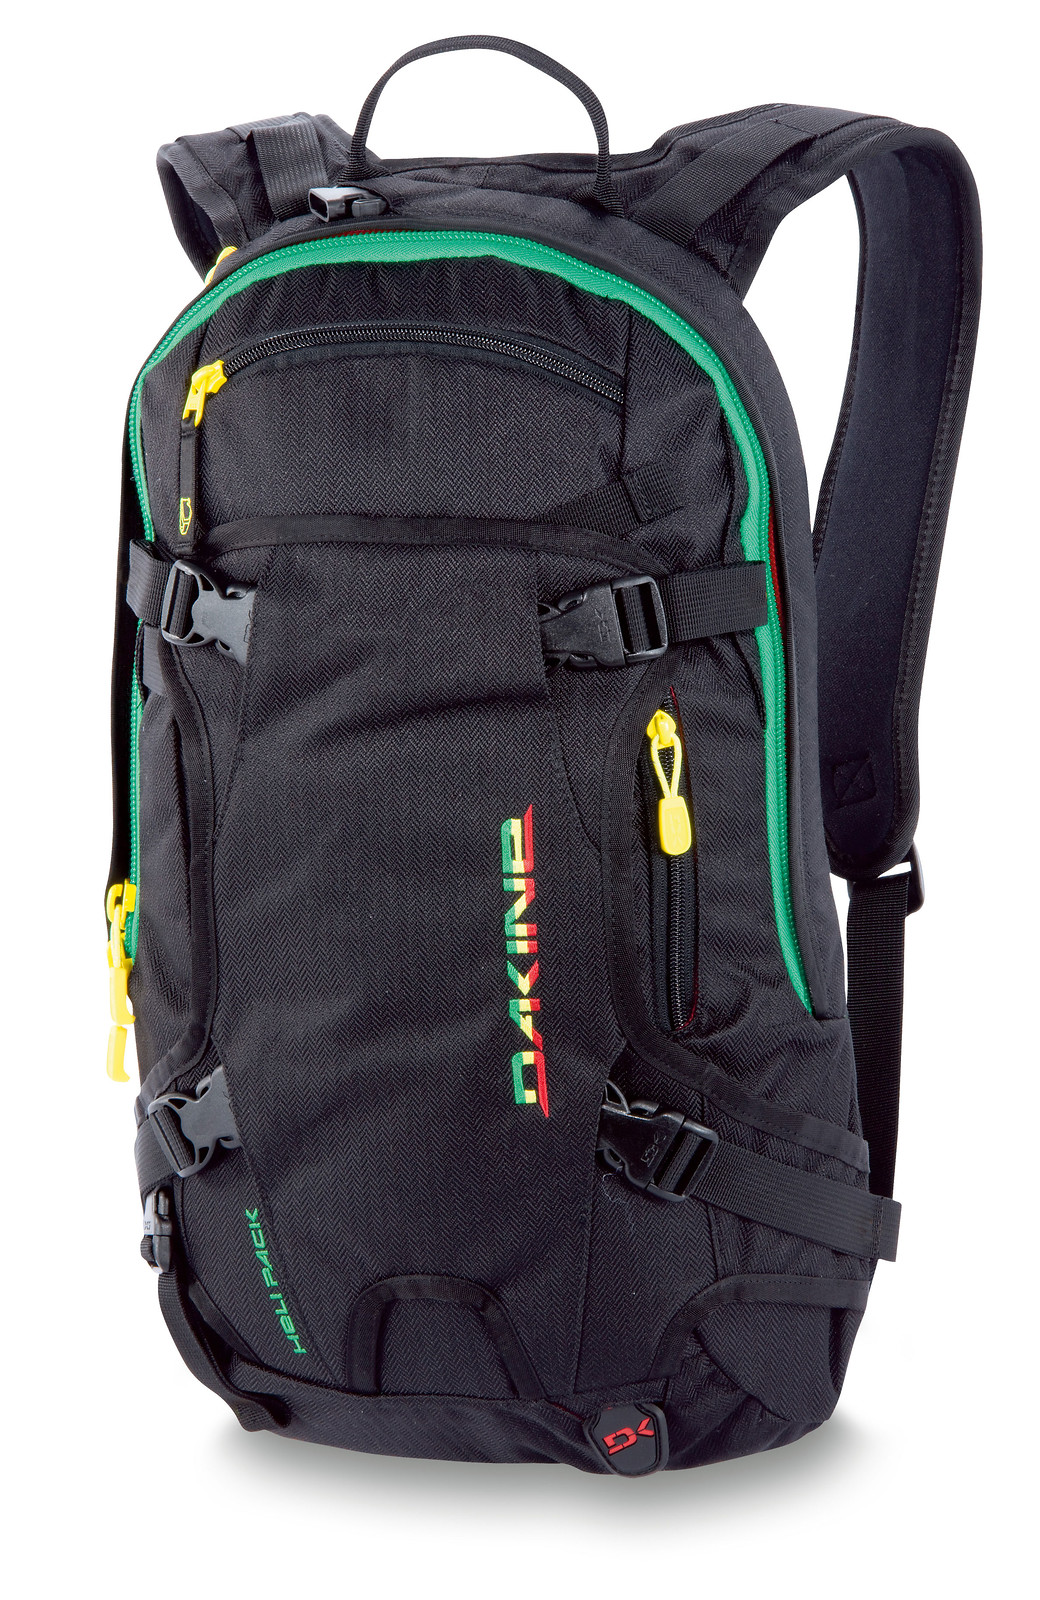 Dakine Heli Backpack Rasta - Reviews, Comparisons, Specs ...